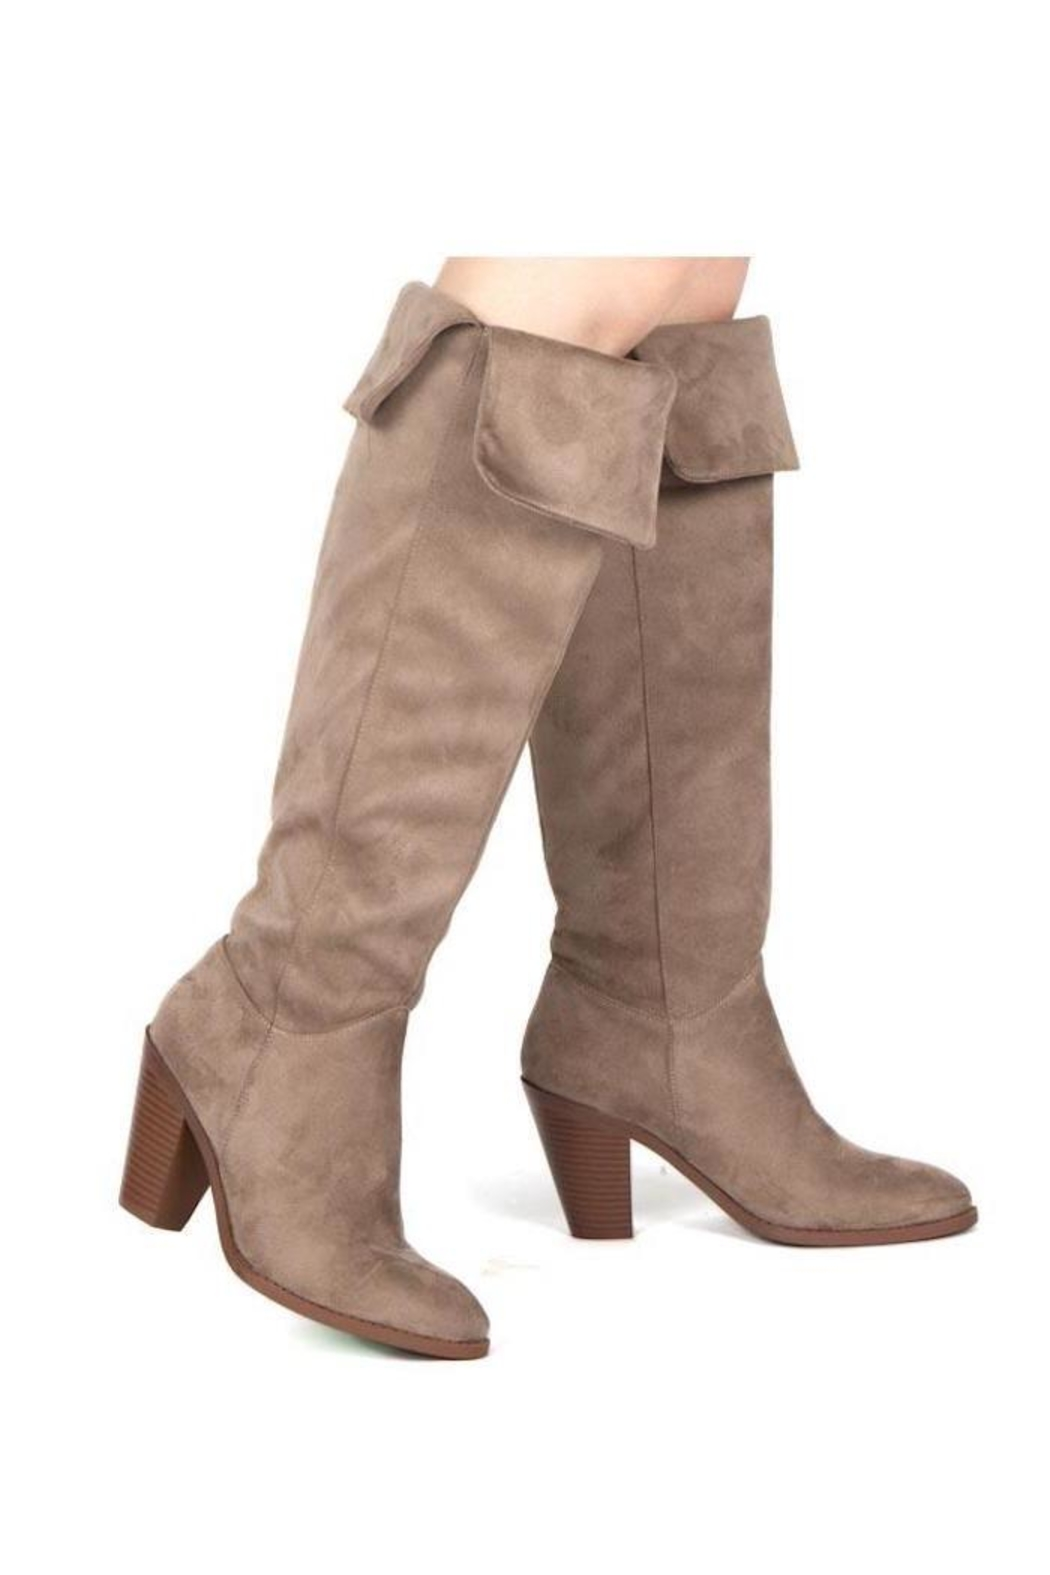 Qupid Taupe Heeled Boots - Side Cropped Image